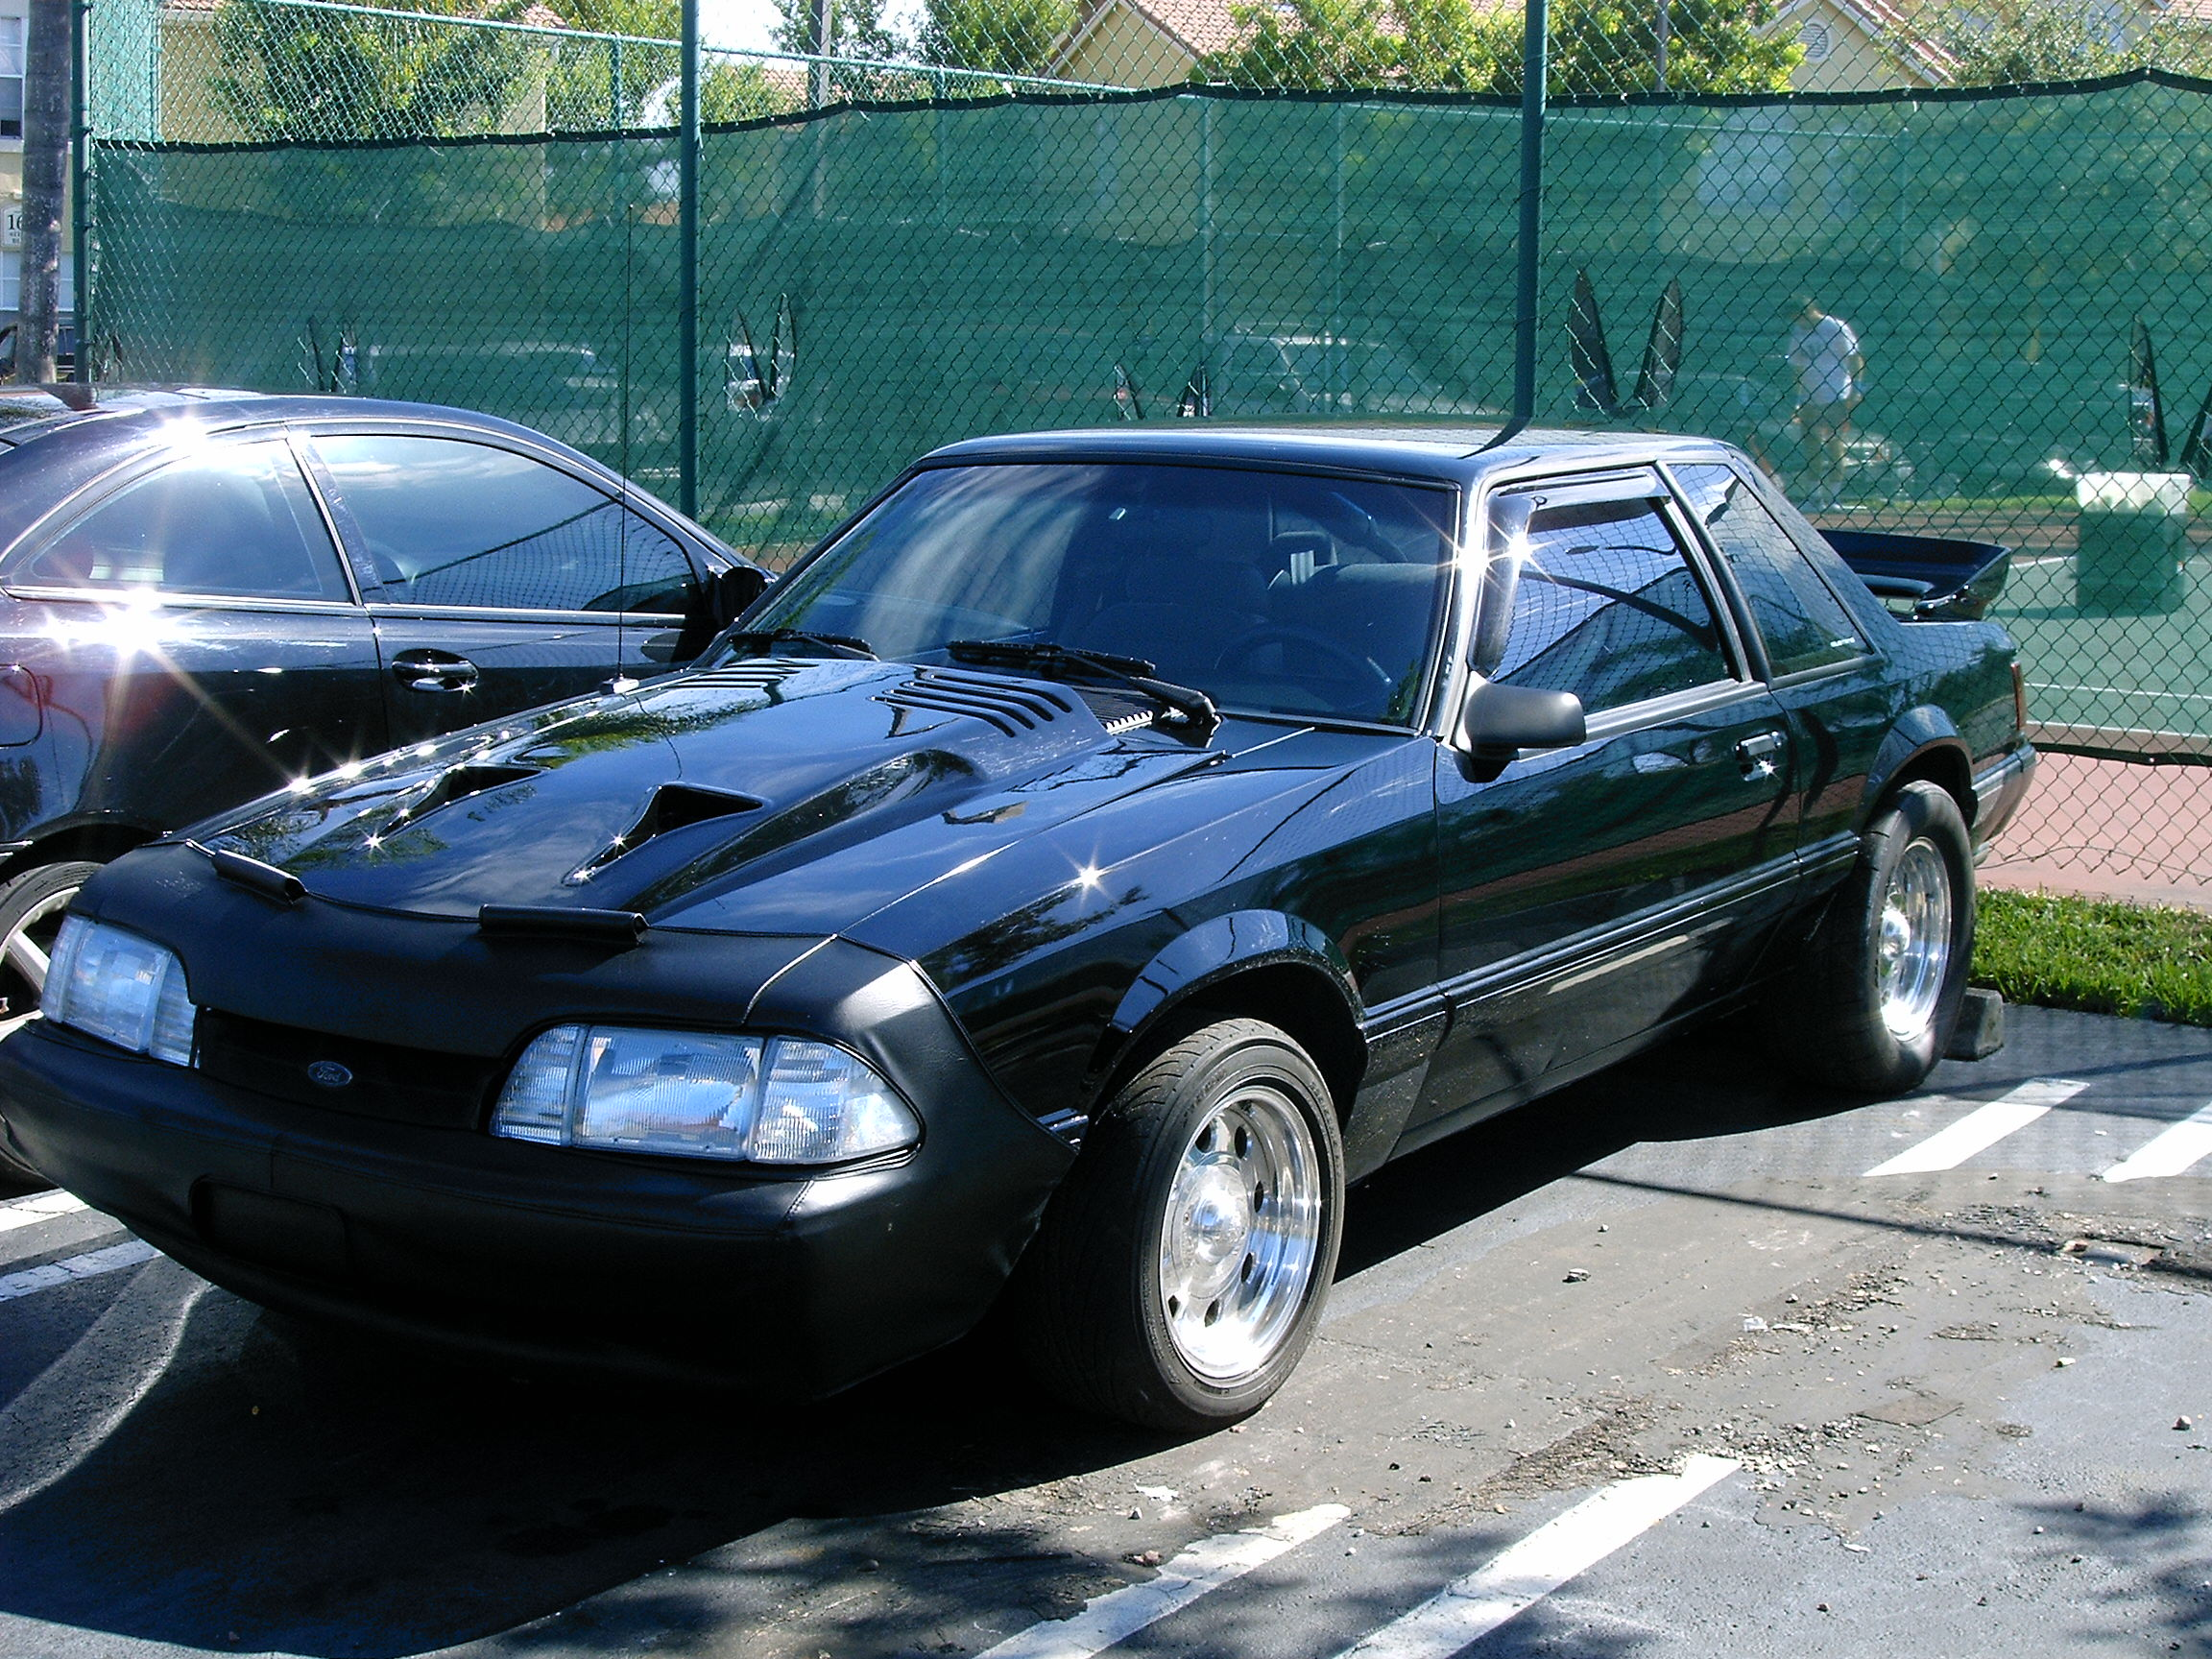 Click image for larger version  Name:black beast 004.jpg Views:236 Size:1.42 MB ID:14340